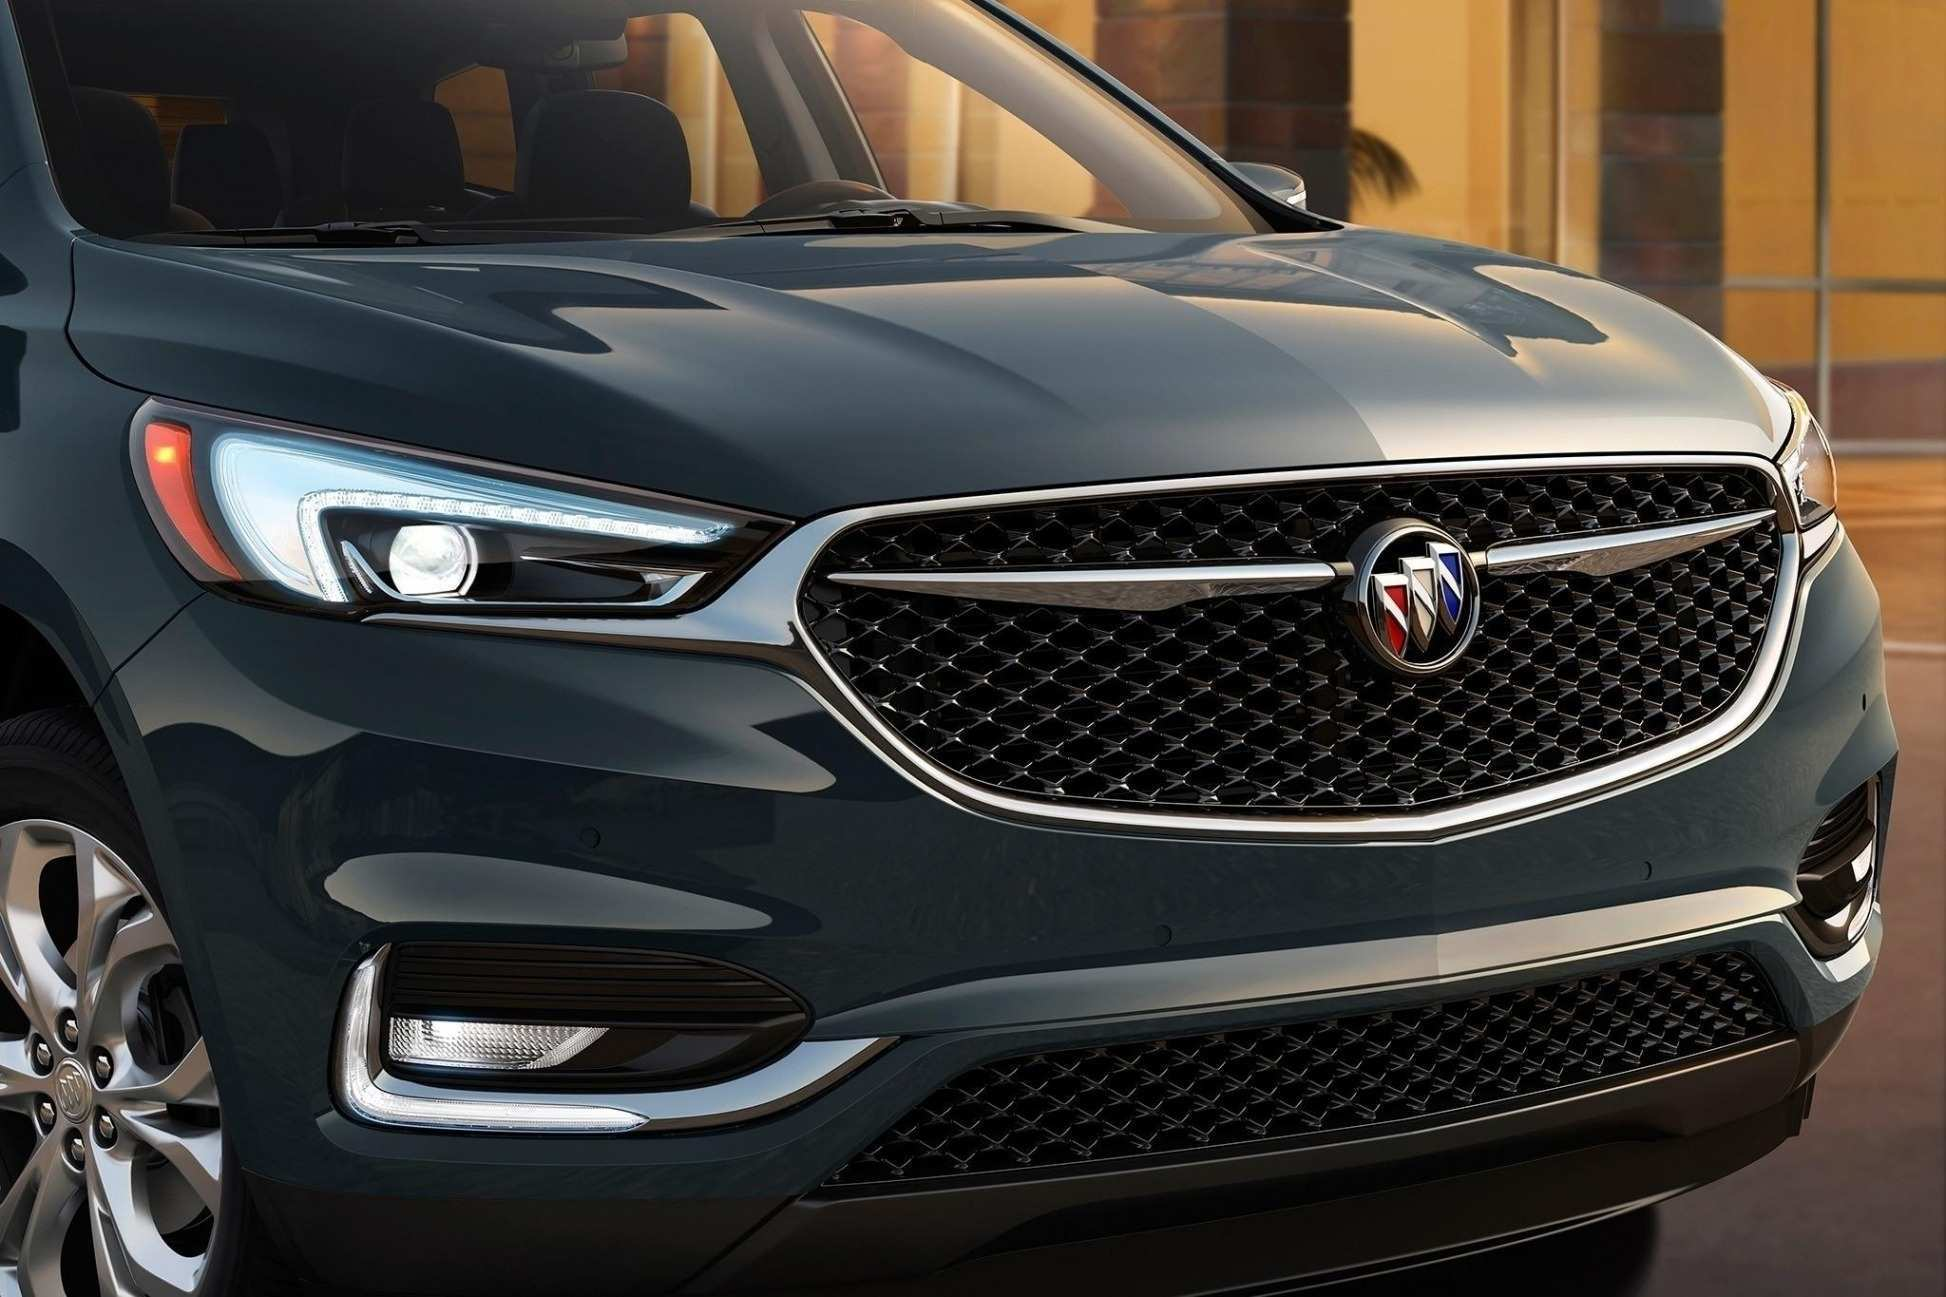 46 All New 2019 Buick Enclave Spy Photos New Concept